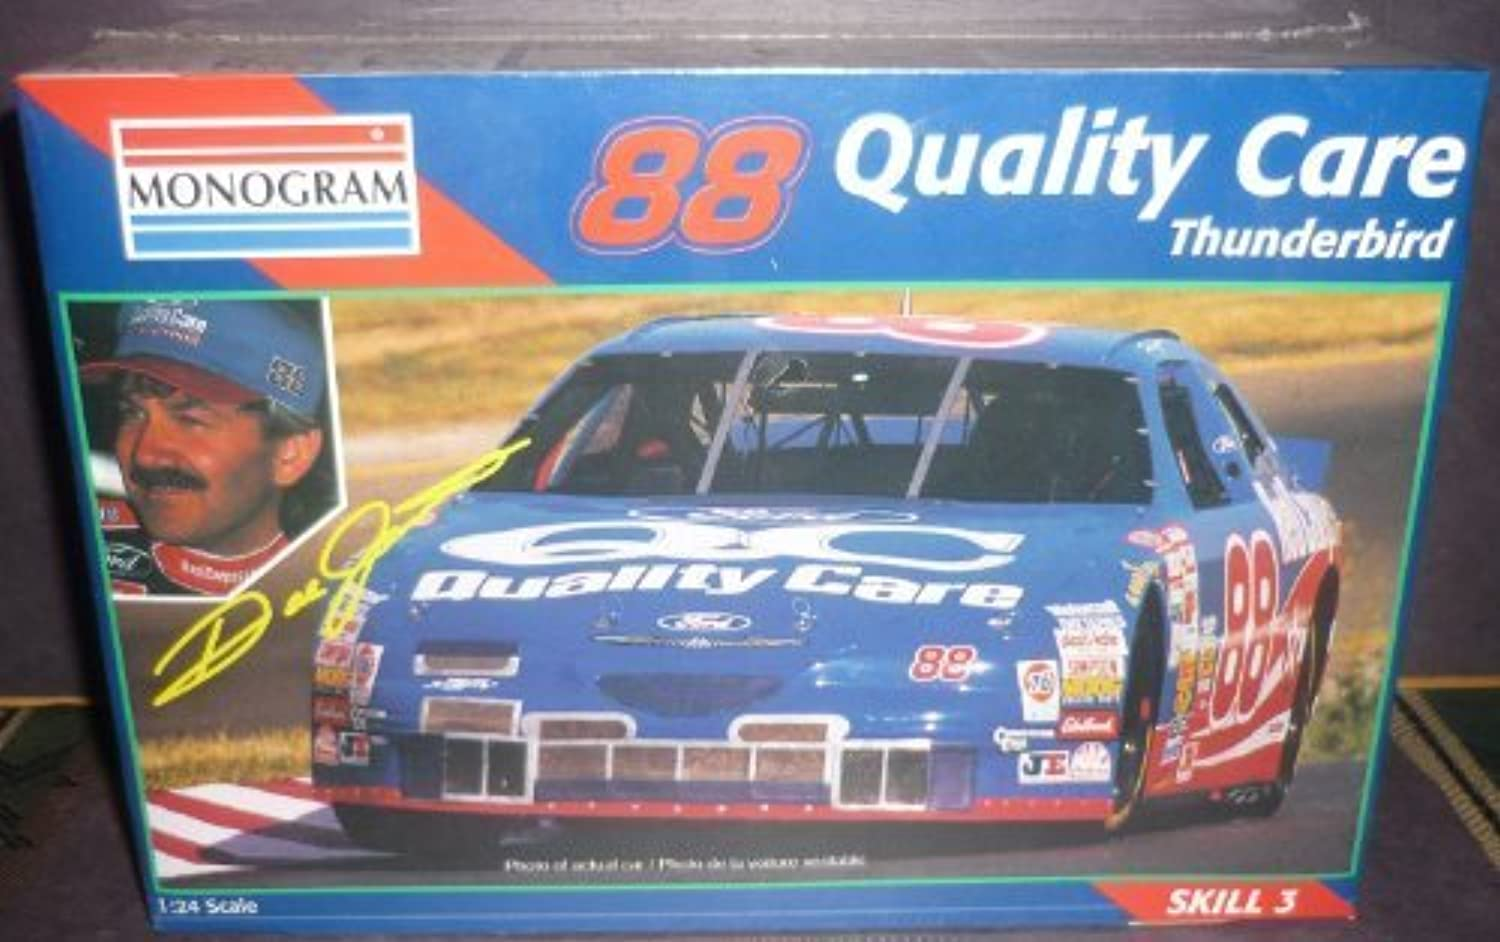 2472 Monogram Dale Jarrett  88 Quality Care Thunderbird 1 24 Scale Plastic Model Kit by Monogram (English Manual) B00OVNVNEY Offizielle Webseite   | Internationale Wahl